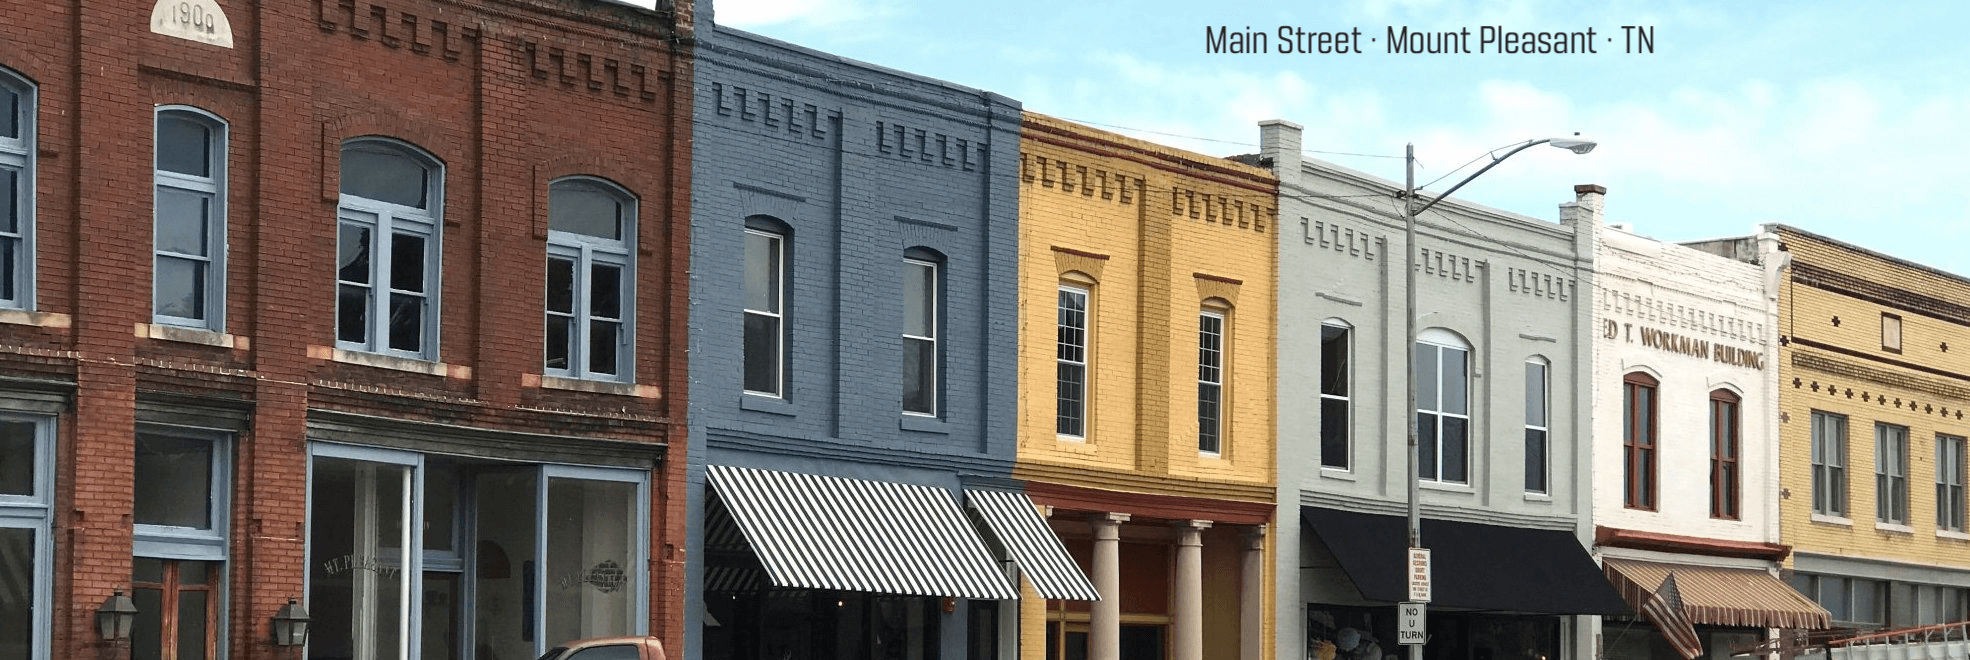 Downtown Mount Pleasant, TN. Photo from TNECD.